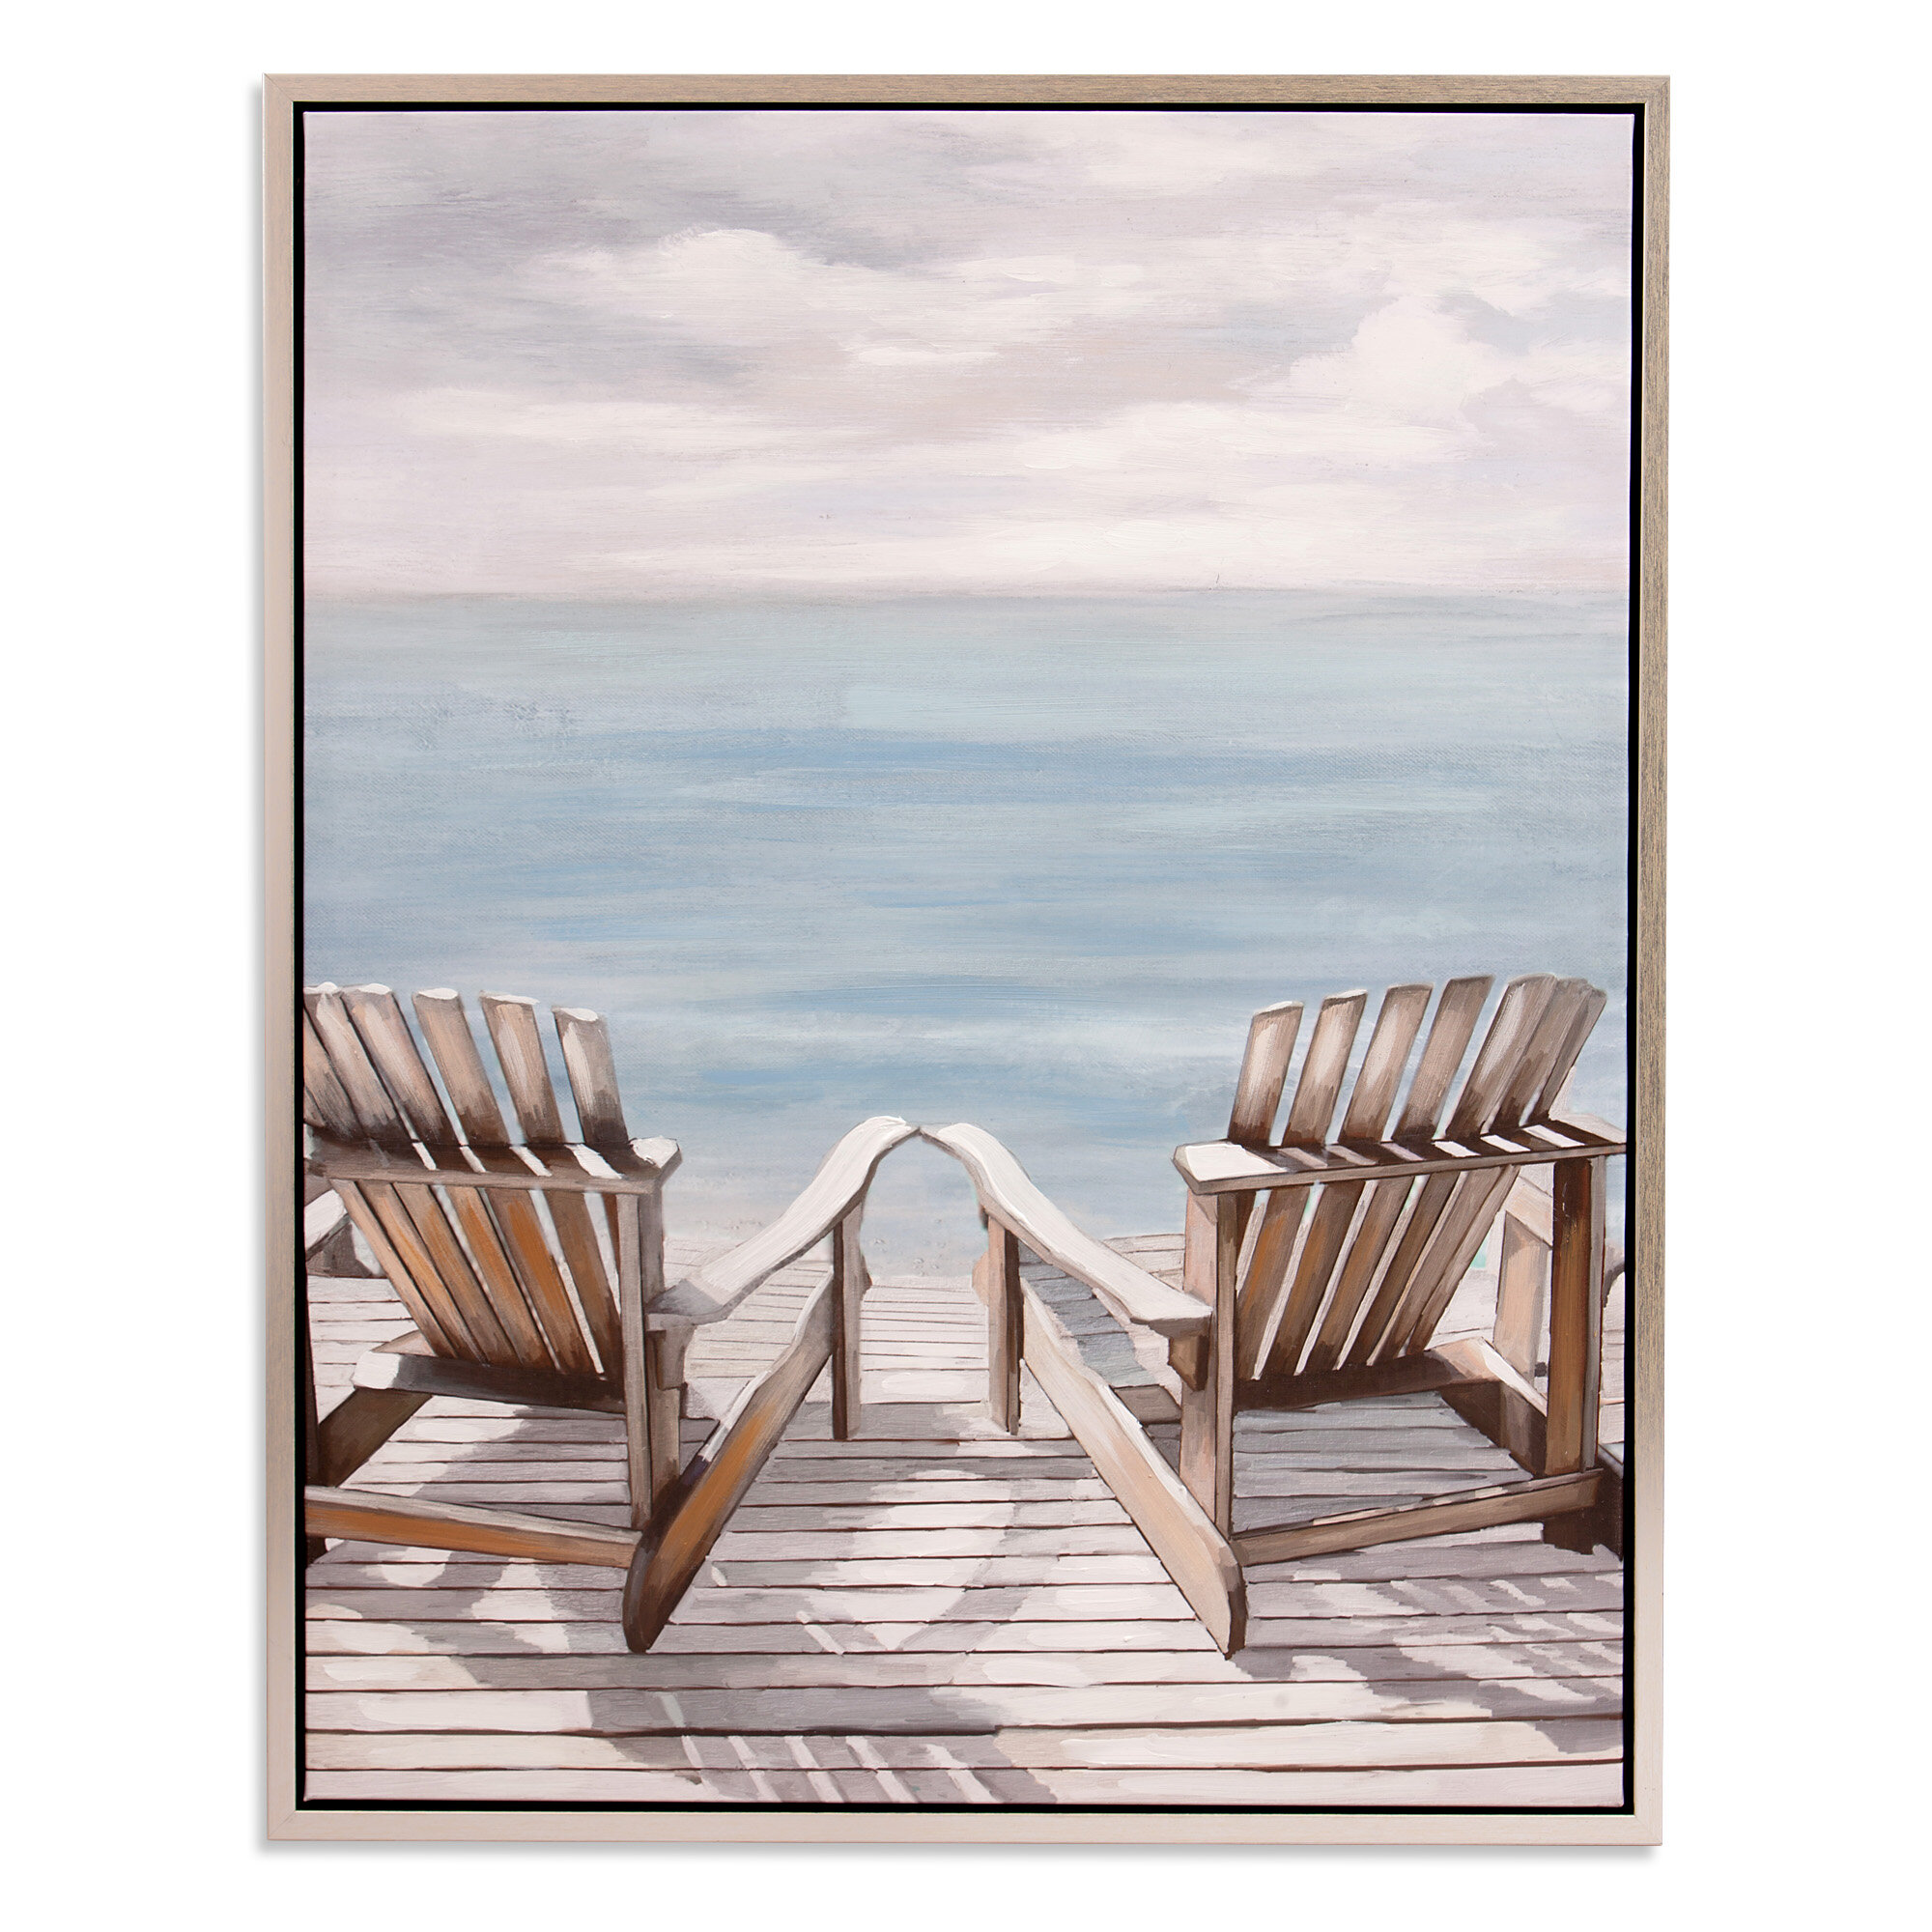 Adirondack Chairs Framed Graphic Art Print On Canvas In Silver